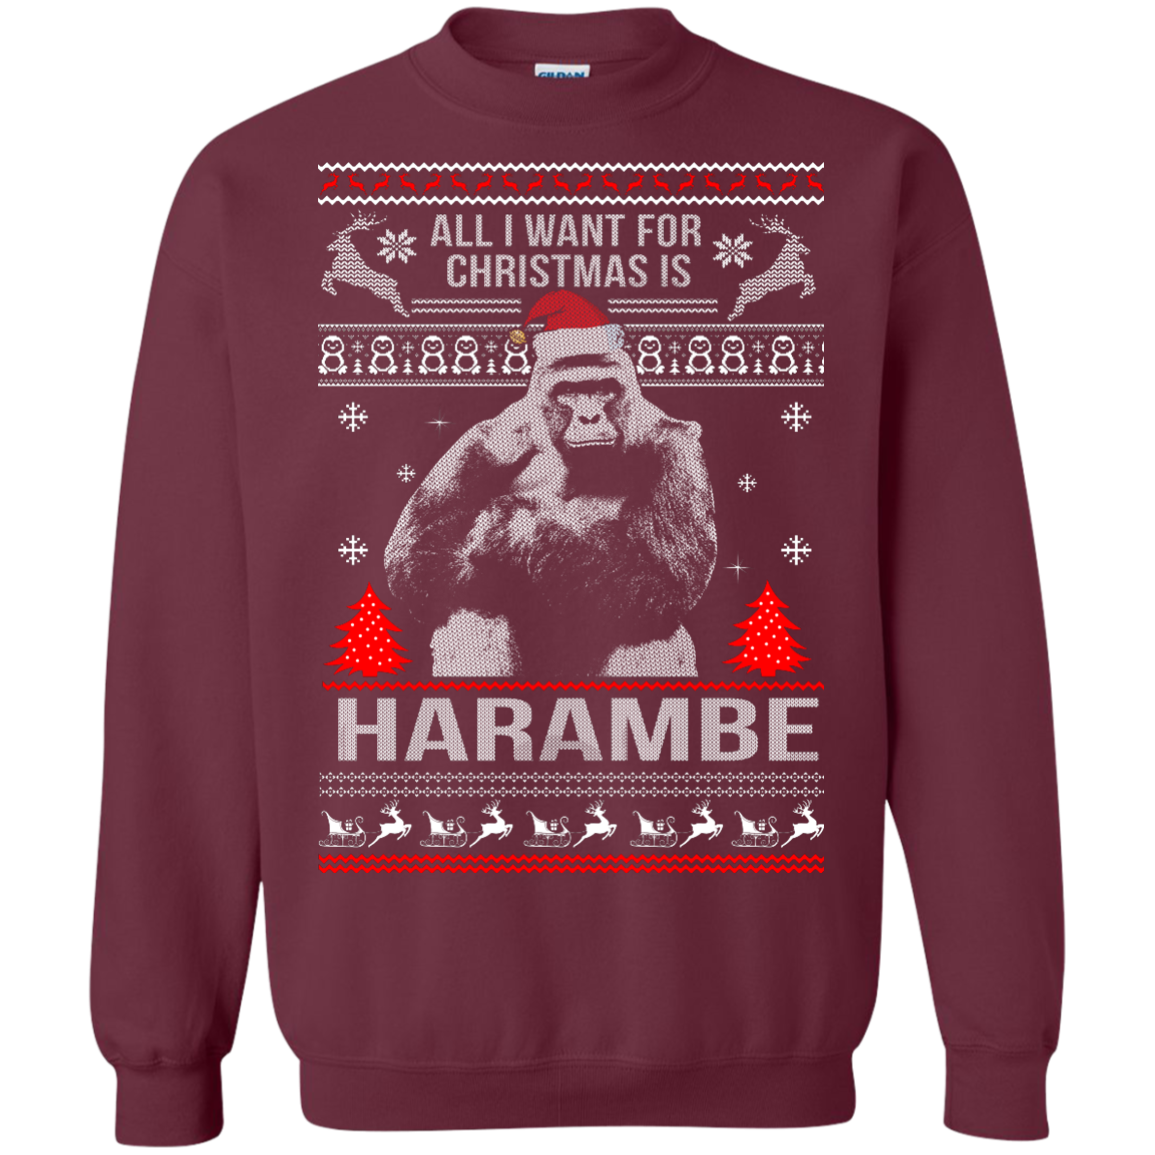 All I Want For Christmas Is Harambe Sweater, Long Sleeve